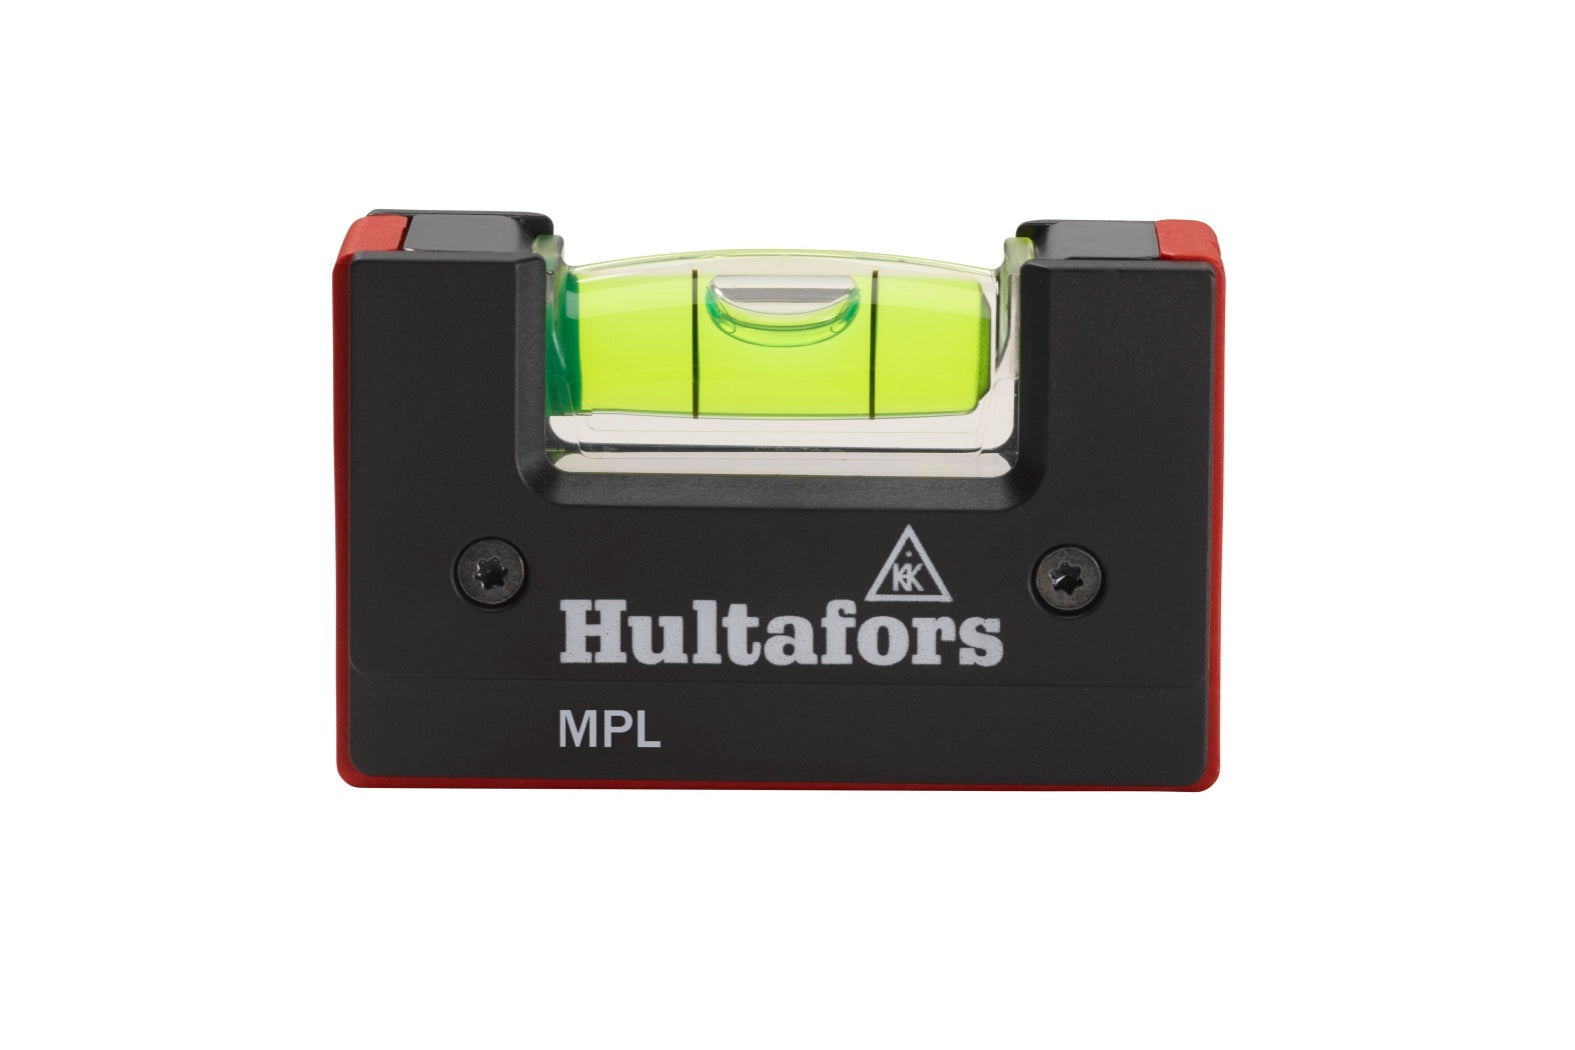 Hultafors Mini Pocket Level MPL